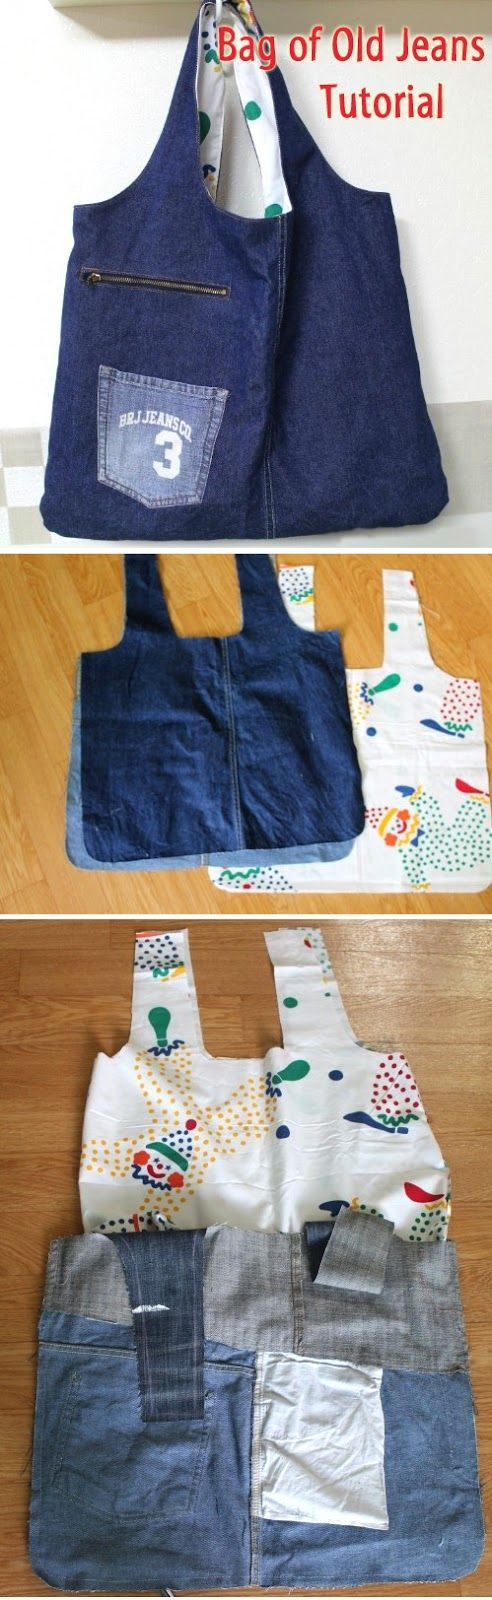 How to sew a bag for shopping of old jeans. Photos sewing instructions. http://www.handmadiya.com/2016/04/eco-bag-of-old-jeans-tutorial.html